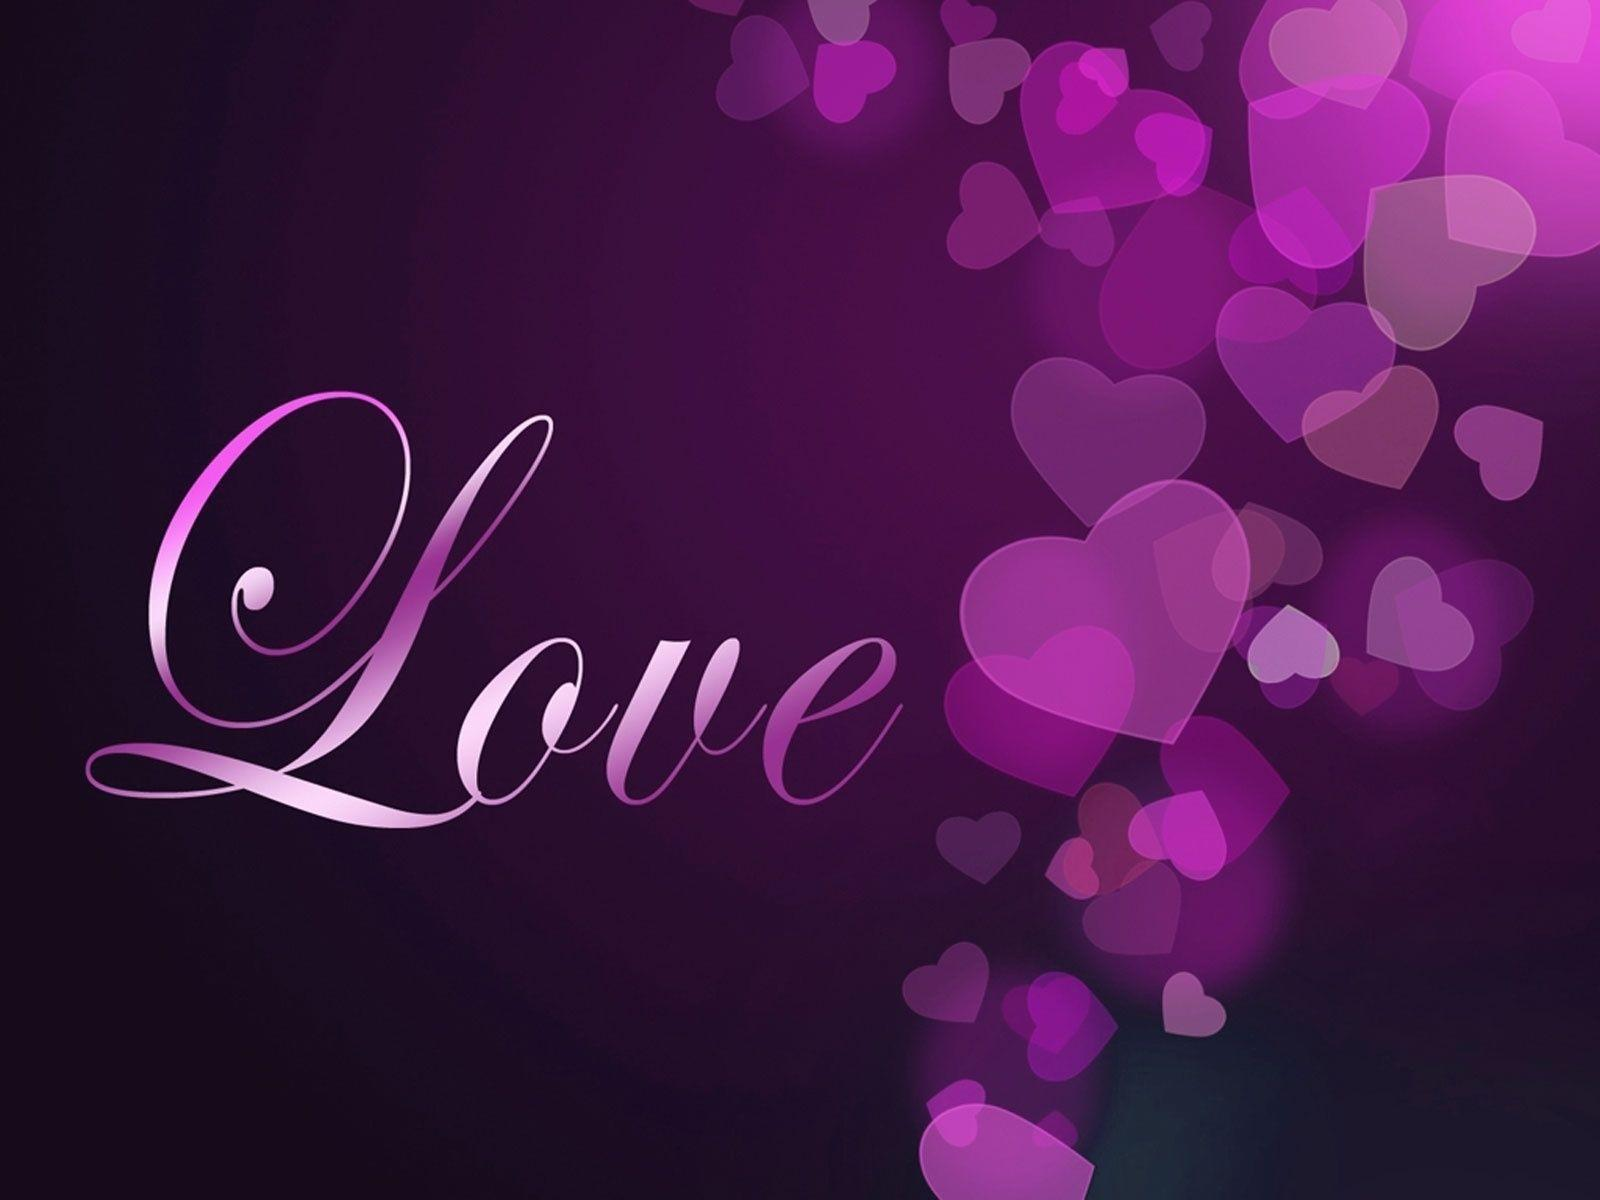 Love Heart Wallpaper Desktop : Purple Heart Wallpapers - Wallpaper cave